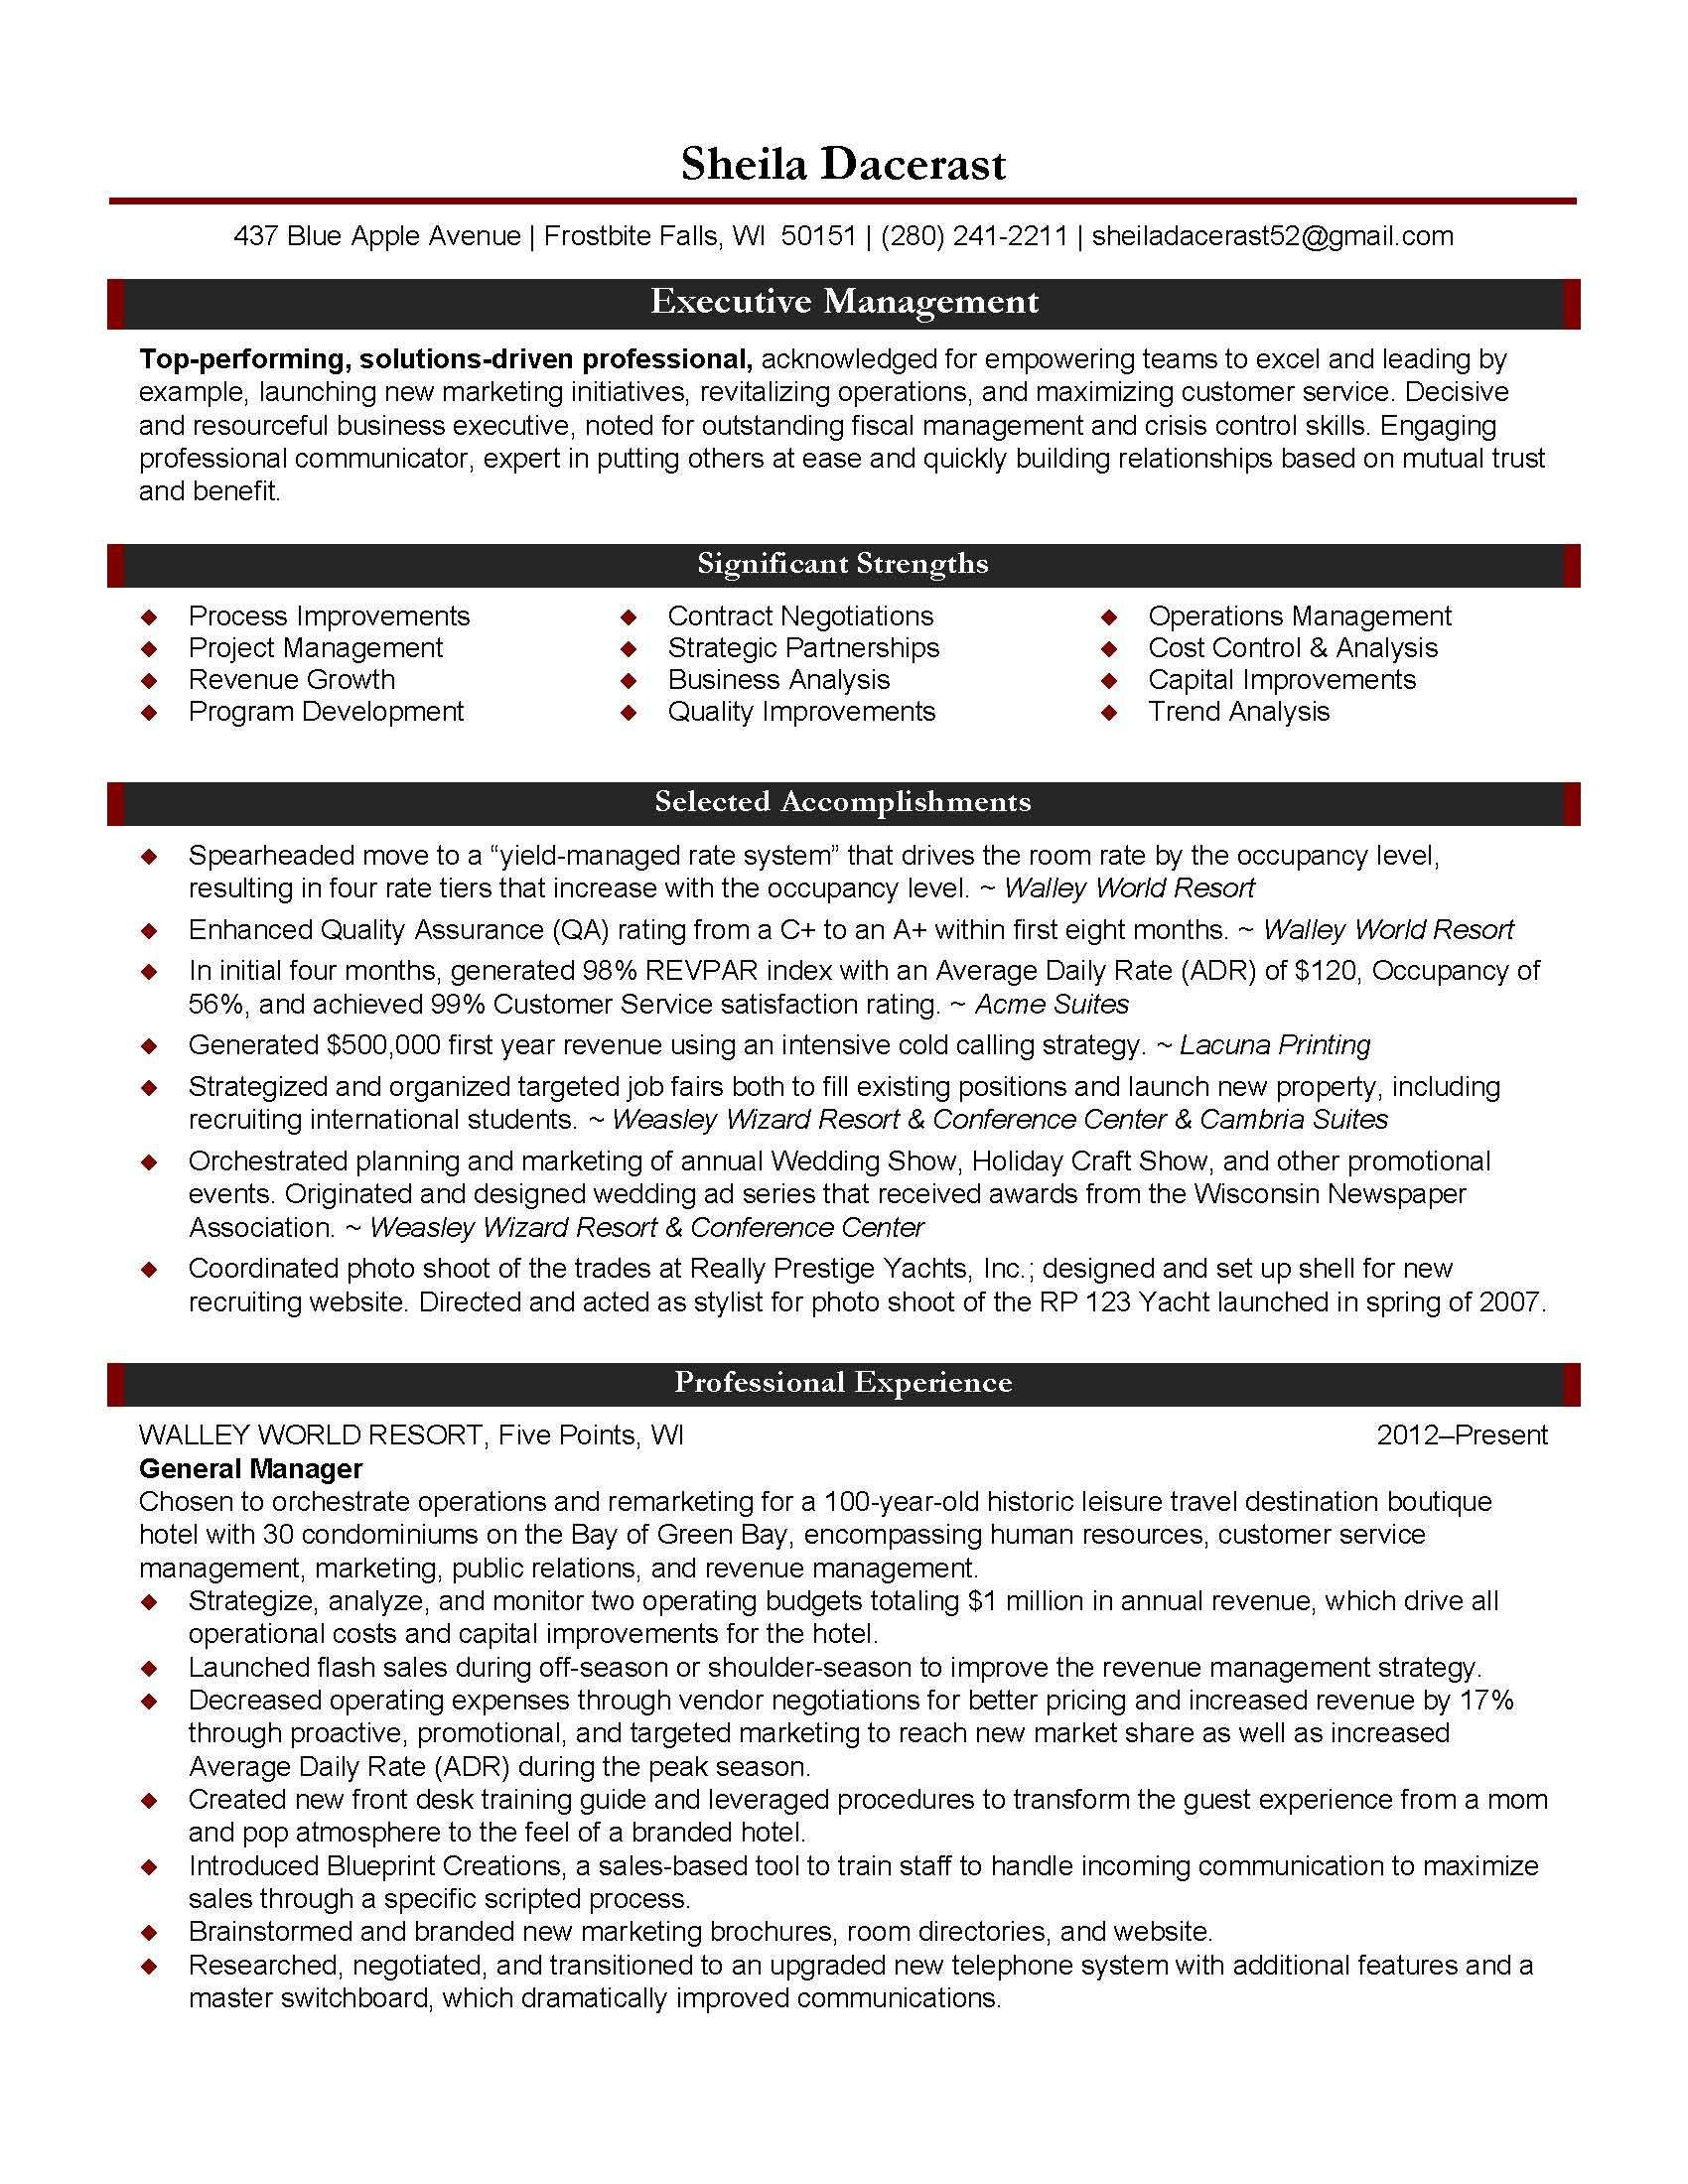 Executive Format Resume Template Executive Director Resume Non Profit Service Project Manager